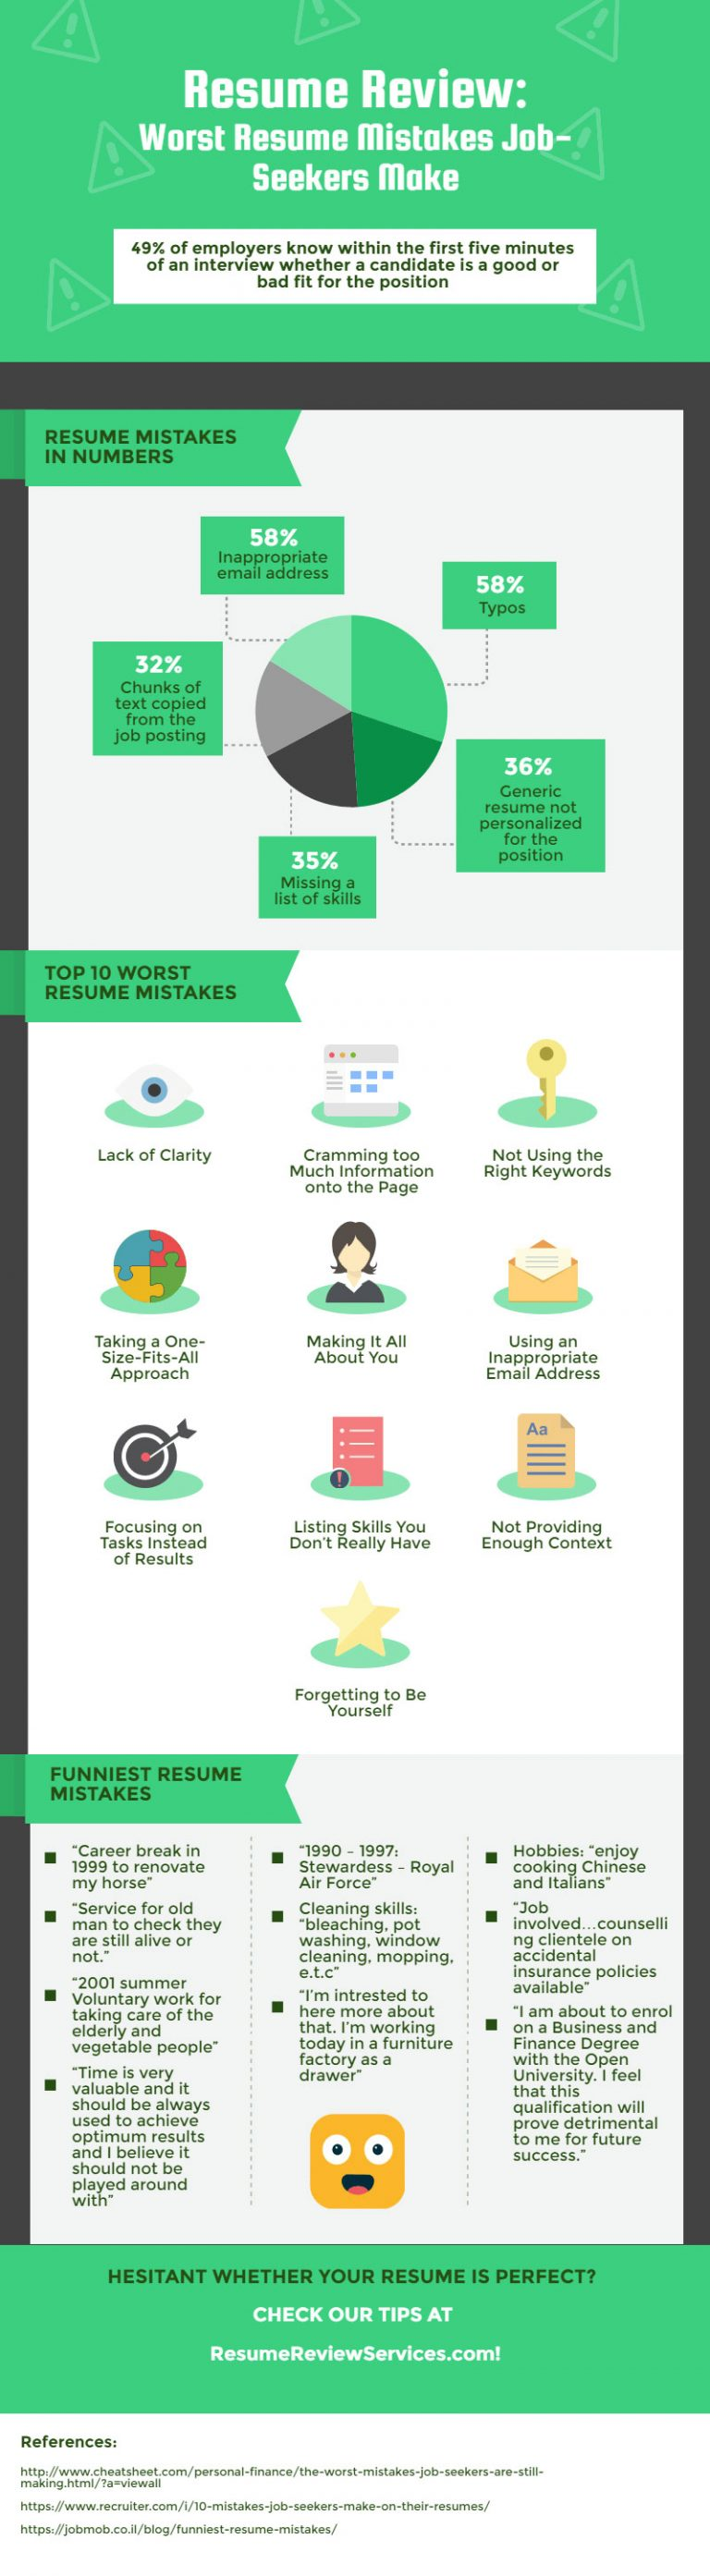 Worst Resume Mistakes Job Seekers Can Make - Infographic